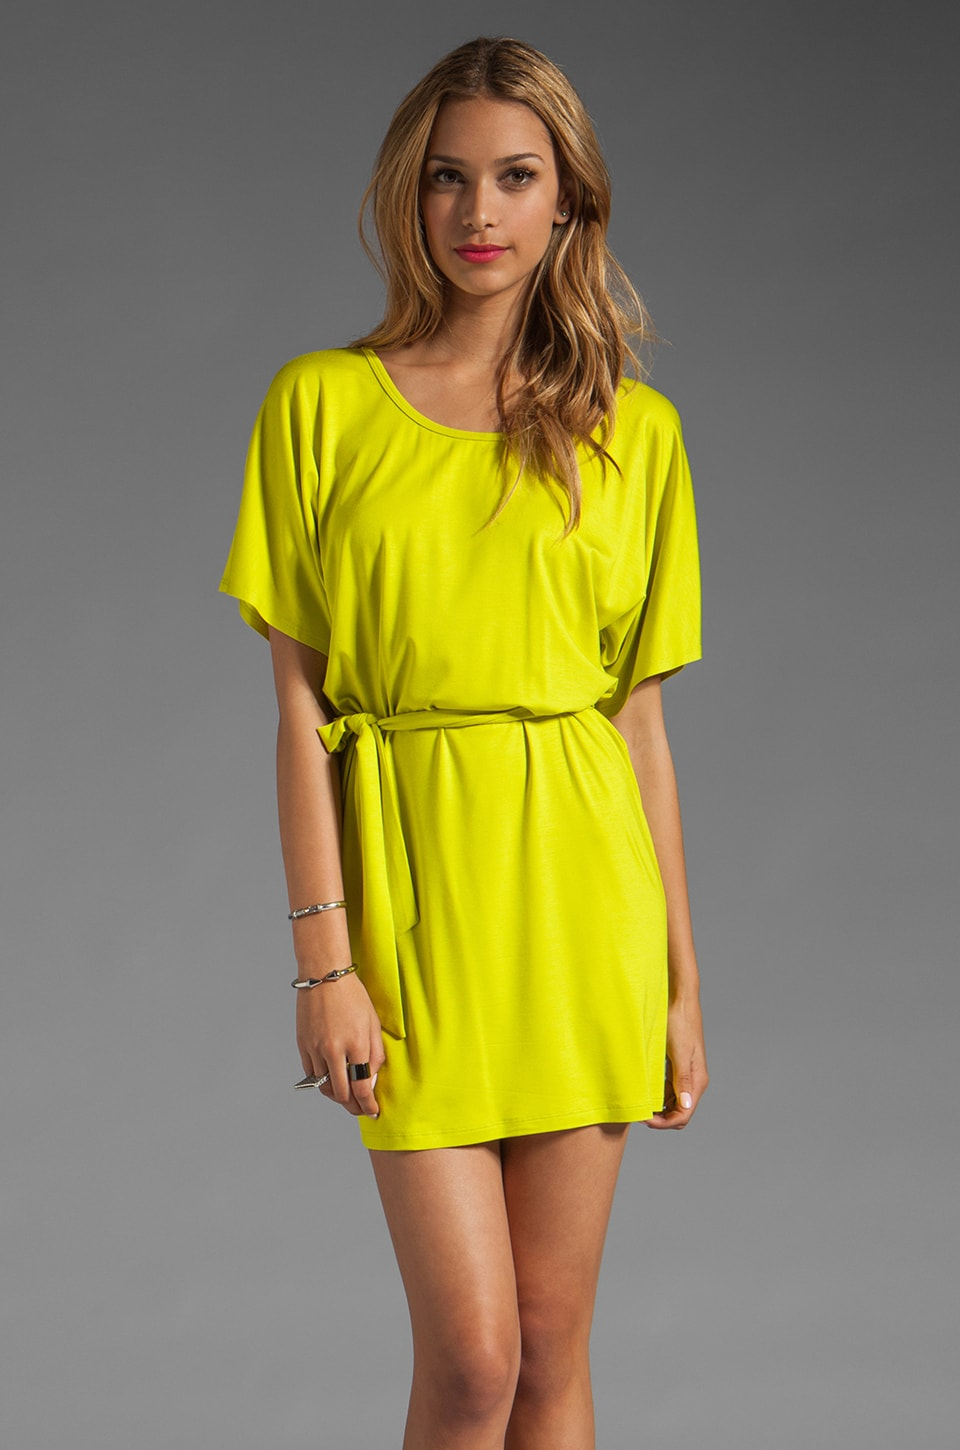 Trina Turk Erin Dress in Glowstick